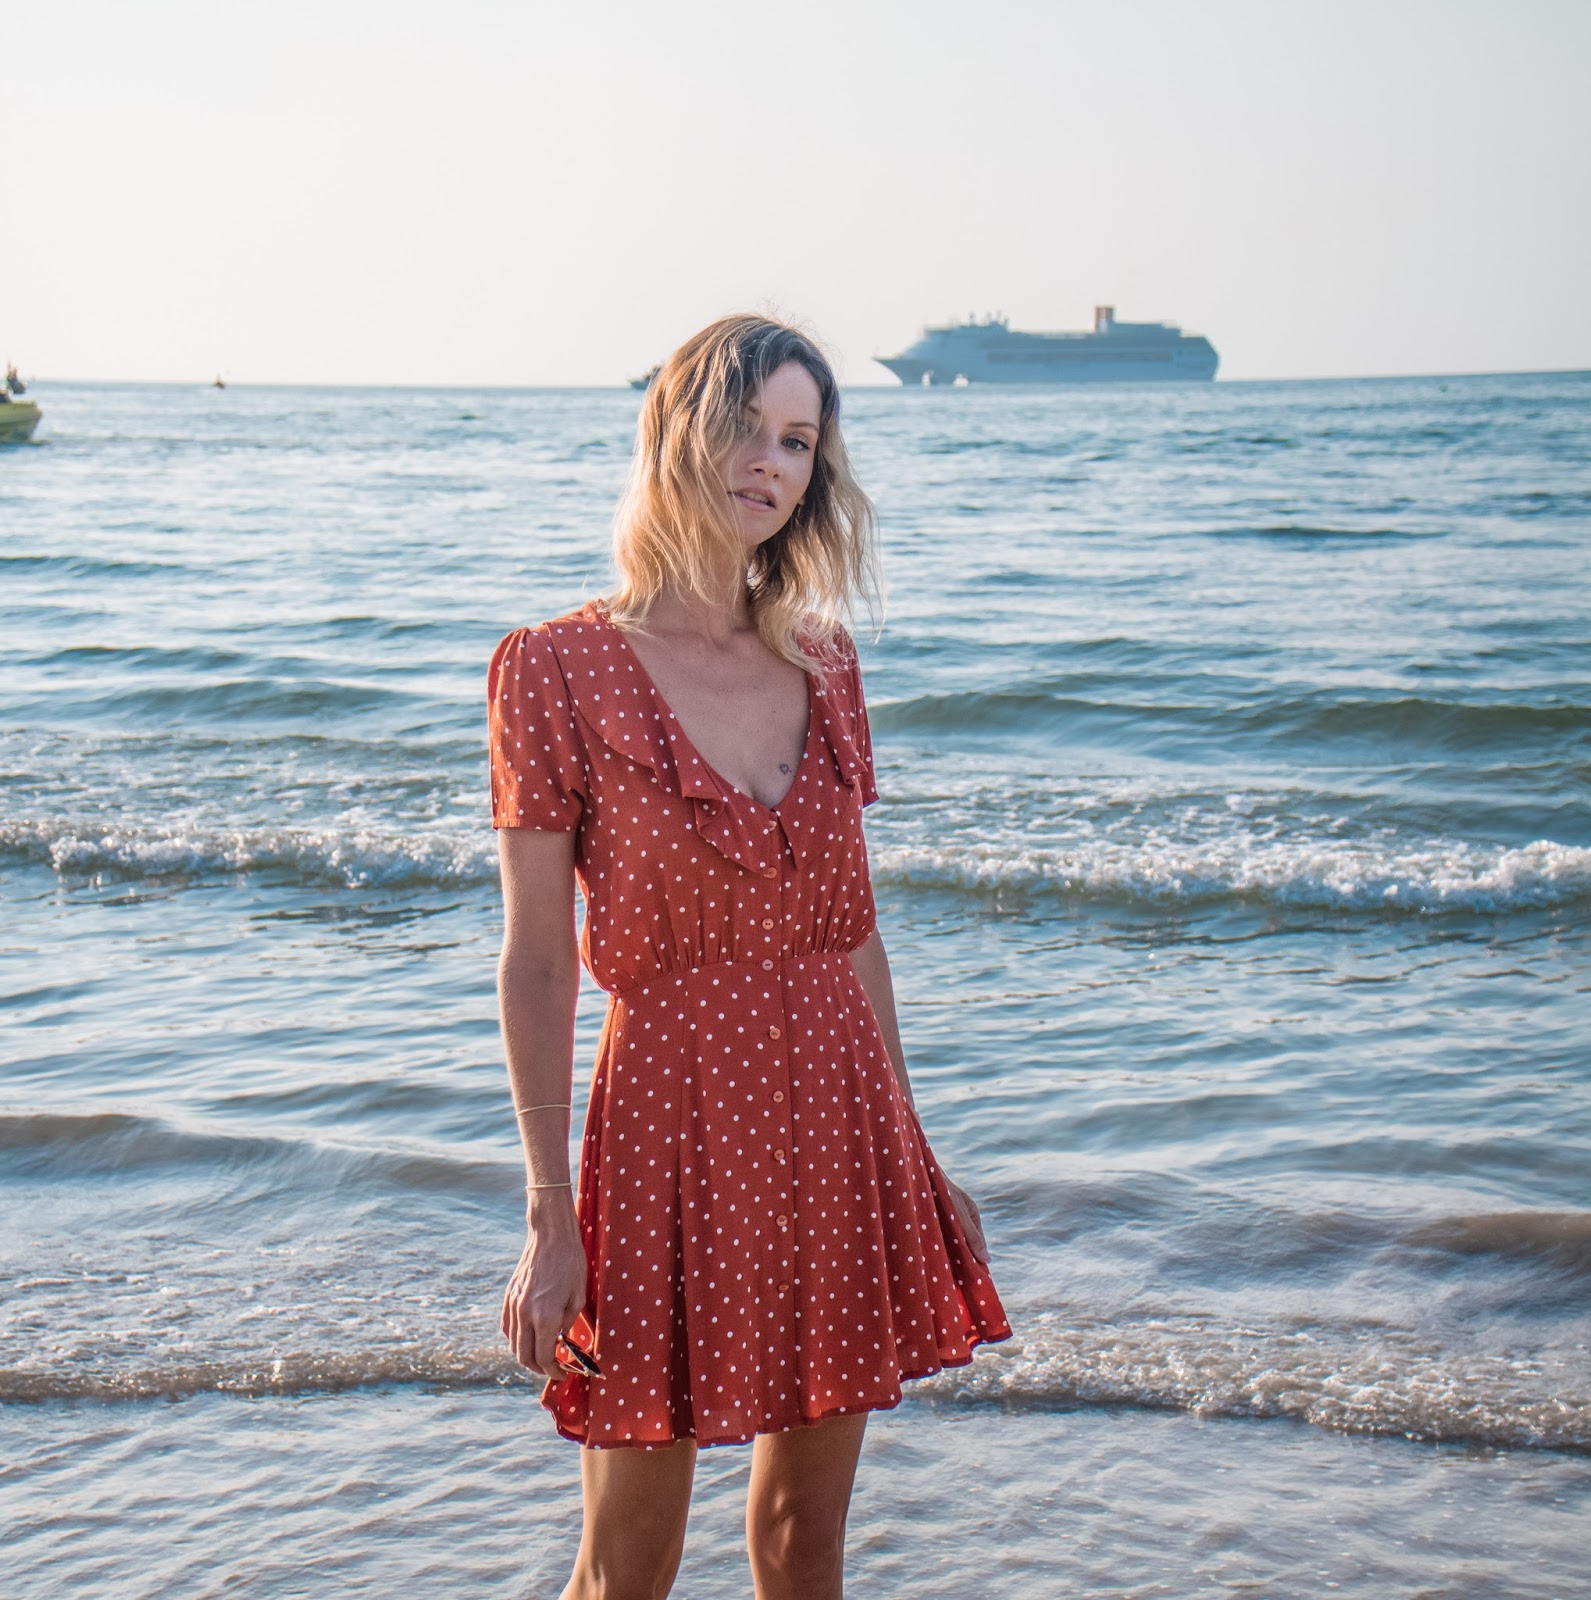 fashion and travel blogger, Alison Hutchinson, is wearing an Auguste dress in Phuket Thailand